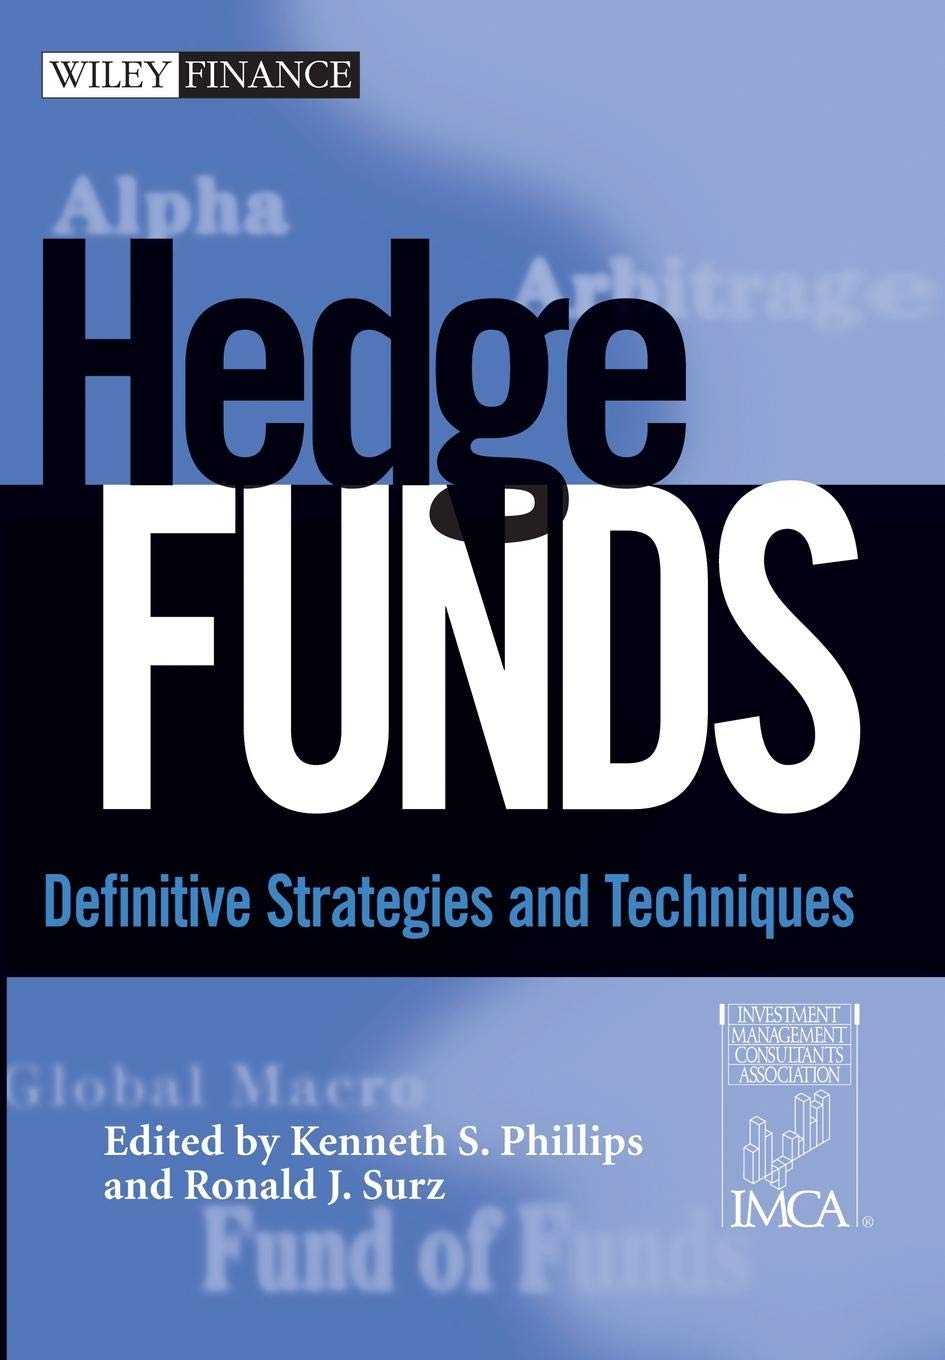 Buy Hedge Funds: Definitive Strategies and Techniques (Wiley Finance) Book  Online at Low Prices in India | Hedge Funds: Definitive Strategies and  Techniques (Wiley Finance) Reviews & Ratings - Amazon.in